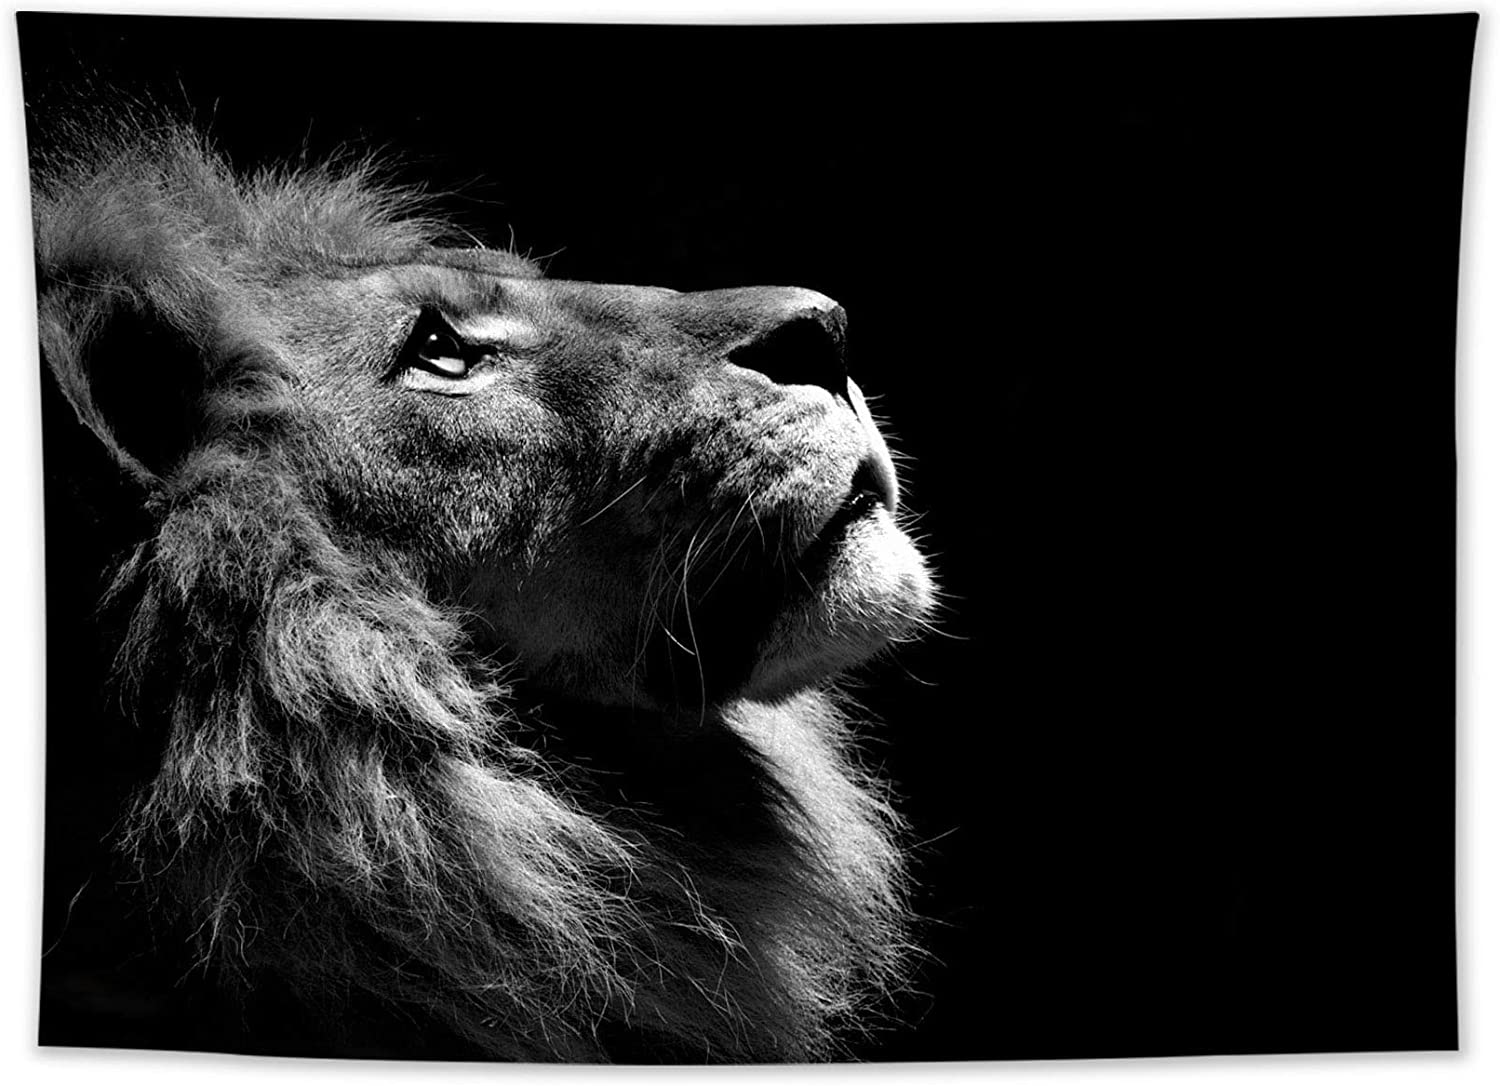 LB Lion Tapestry Wild Animal Tapestry African Lion Black and White Grey Leo Tapestry Wall Hanging for Bedroom Living Room Dorm Wall Art Backdrop Home Decor 60x50 inch